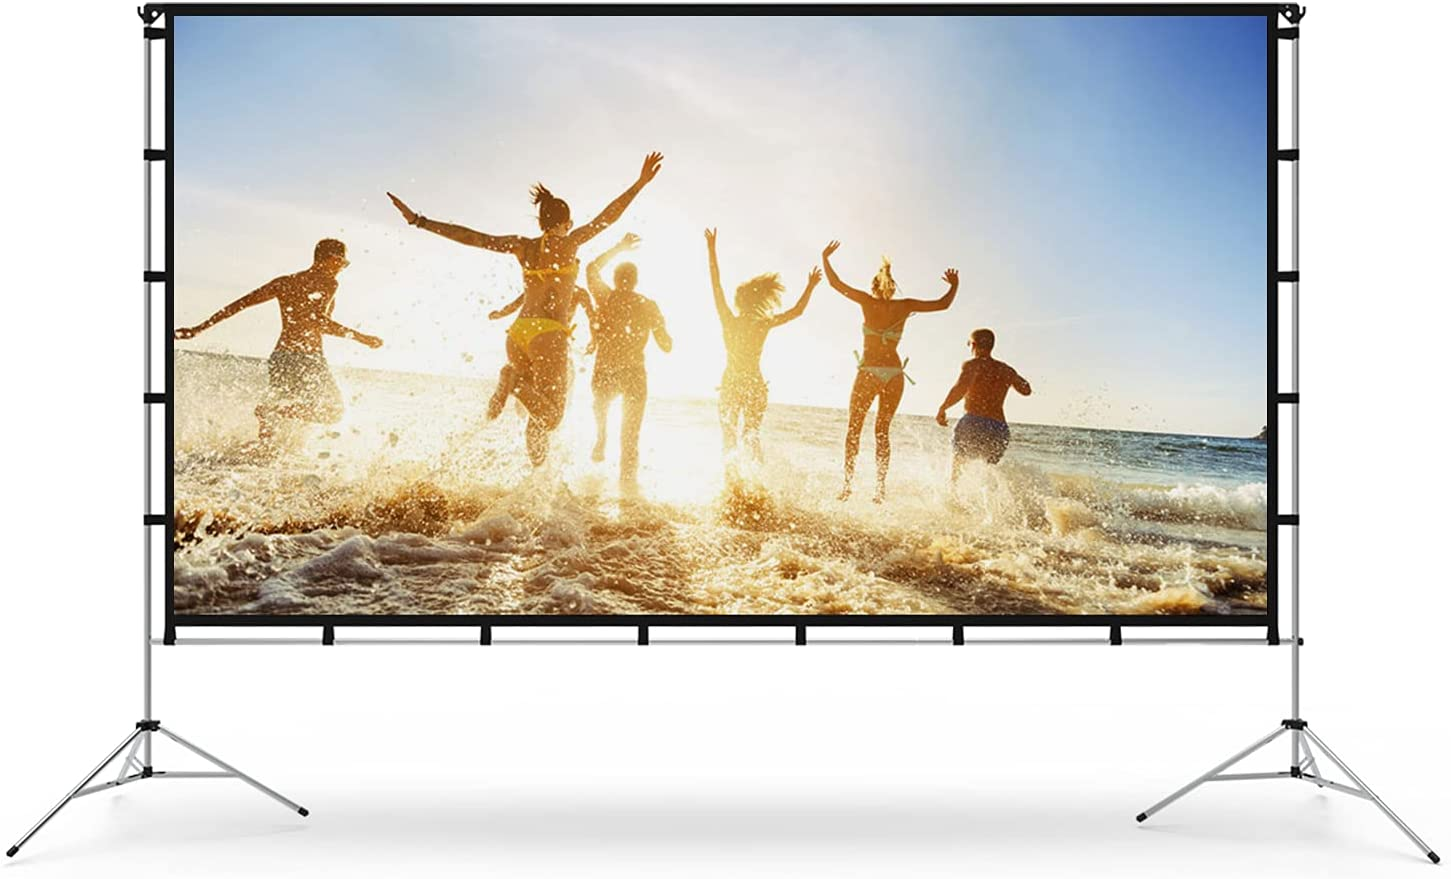 Projector Screen with Stand, Vamvo 80 inch Portable Foldable Projection Screen 16:9 HD 4K Indoor Outdoor Projector Movies Screen with Carrying Bag for Home Theater Camping and Recreational Events